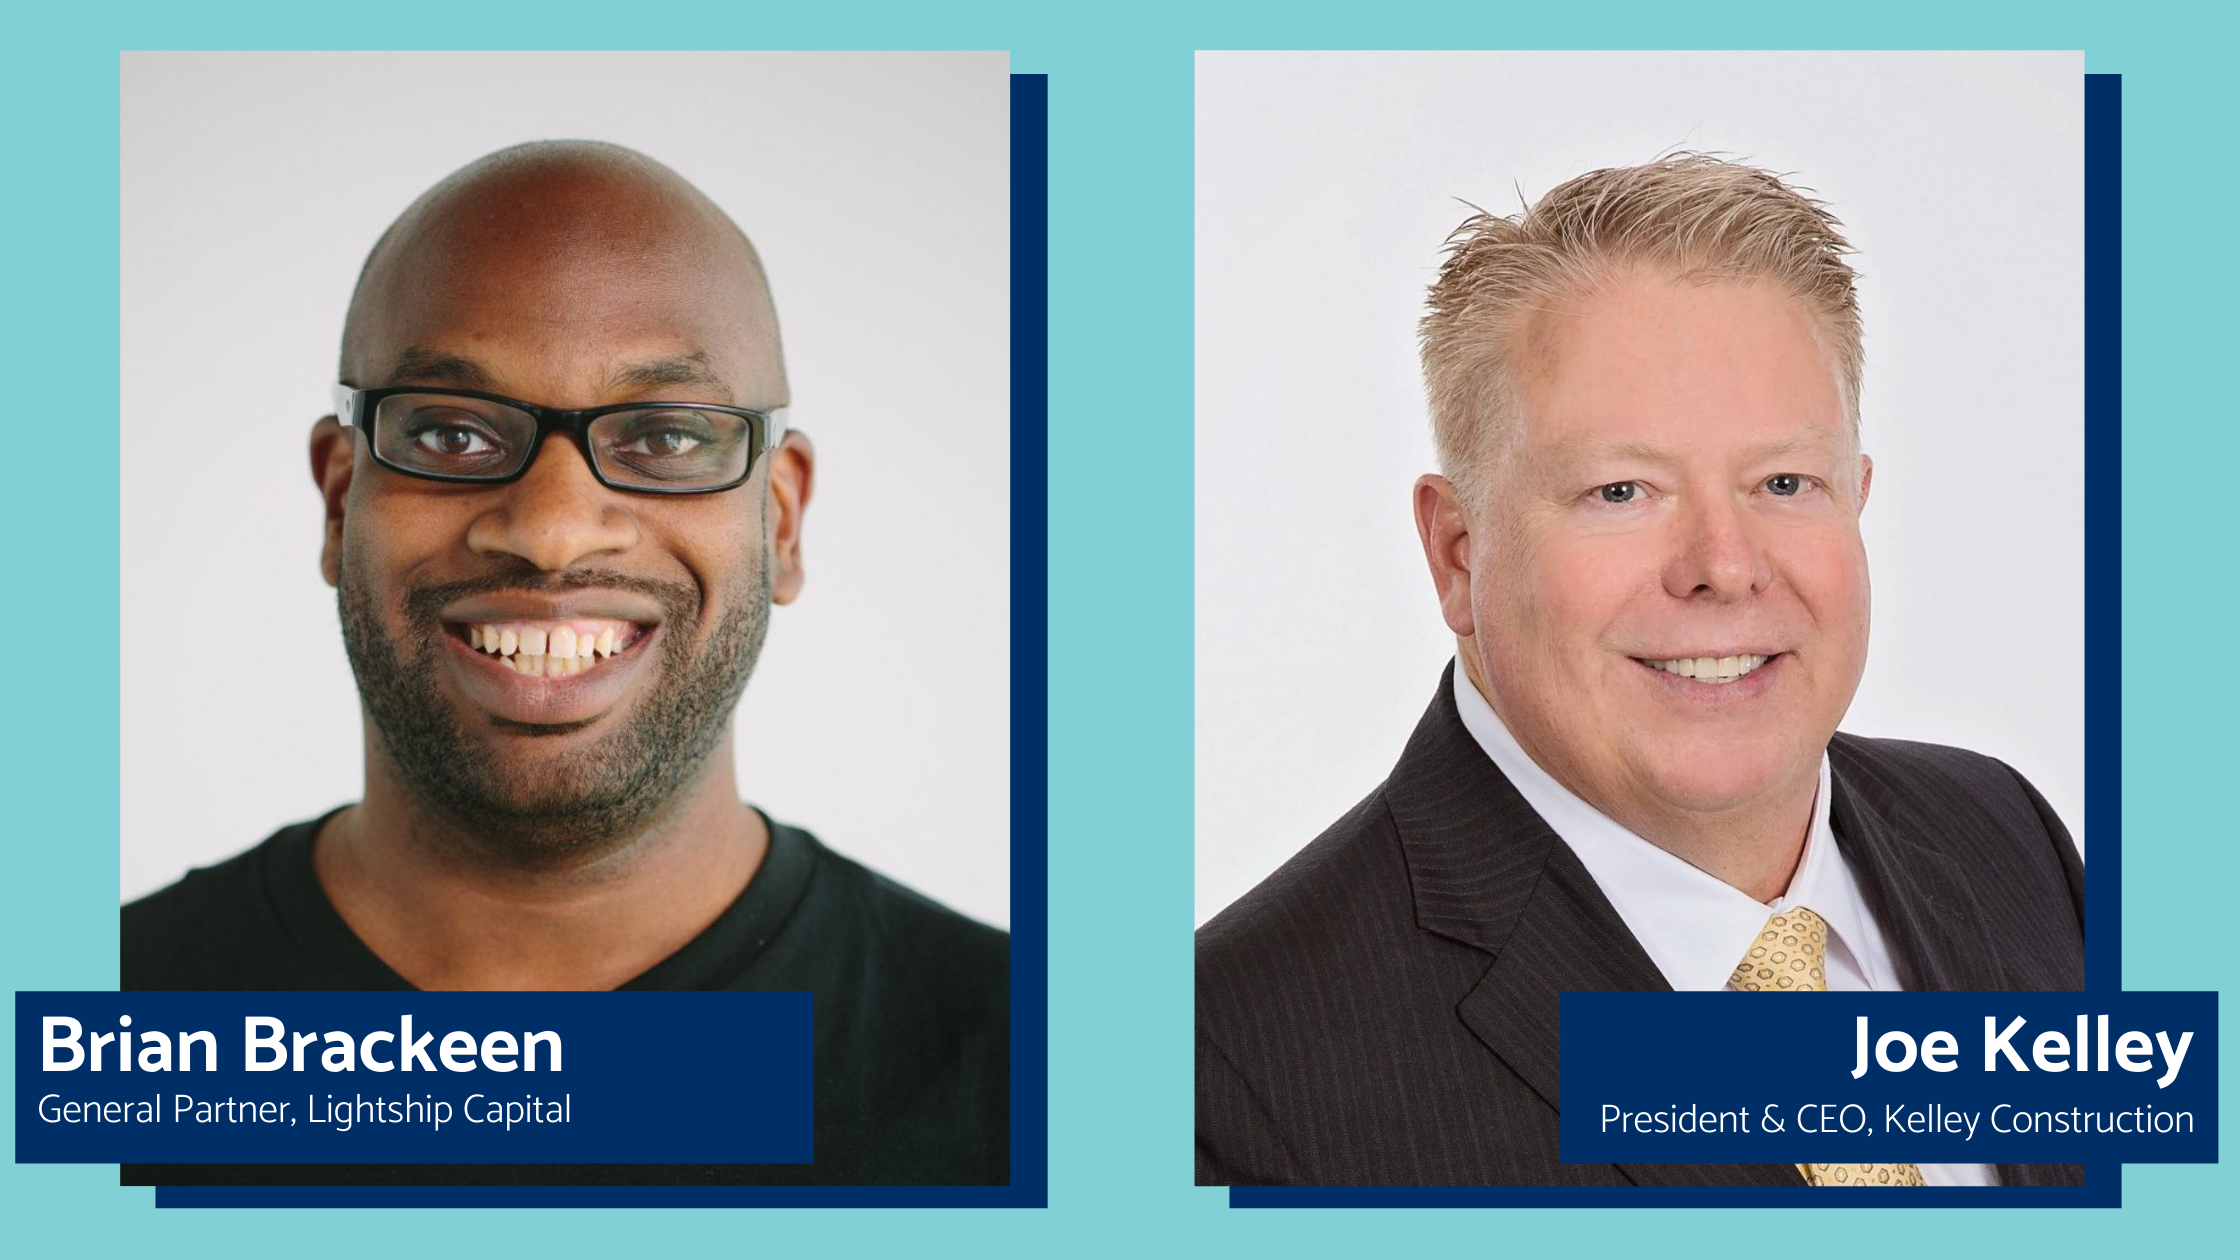 Endeavor Welcomes Joe Kelley and Brian Brackeen to the Board of Directors